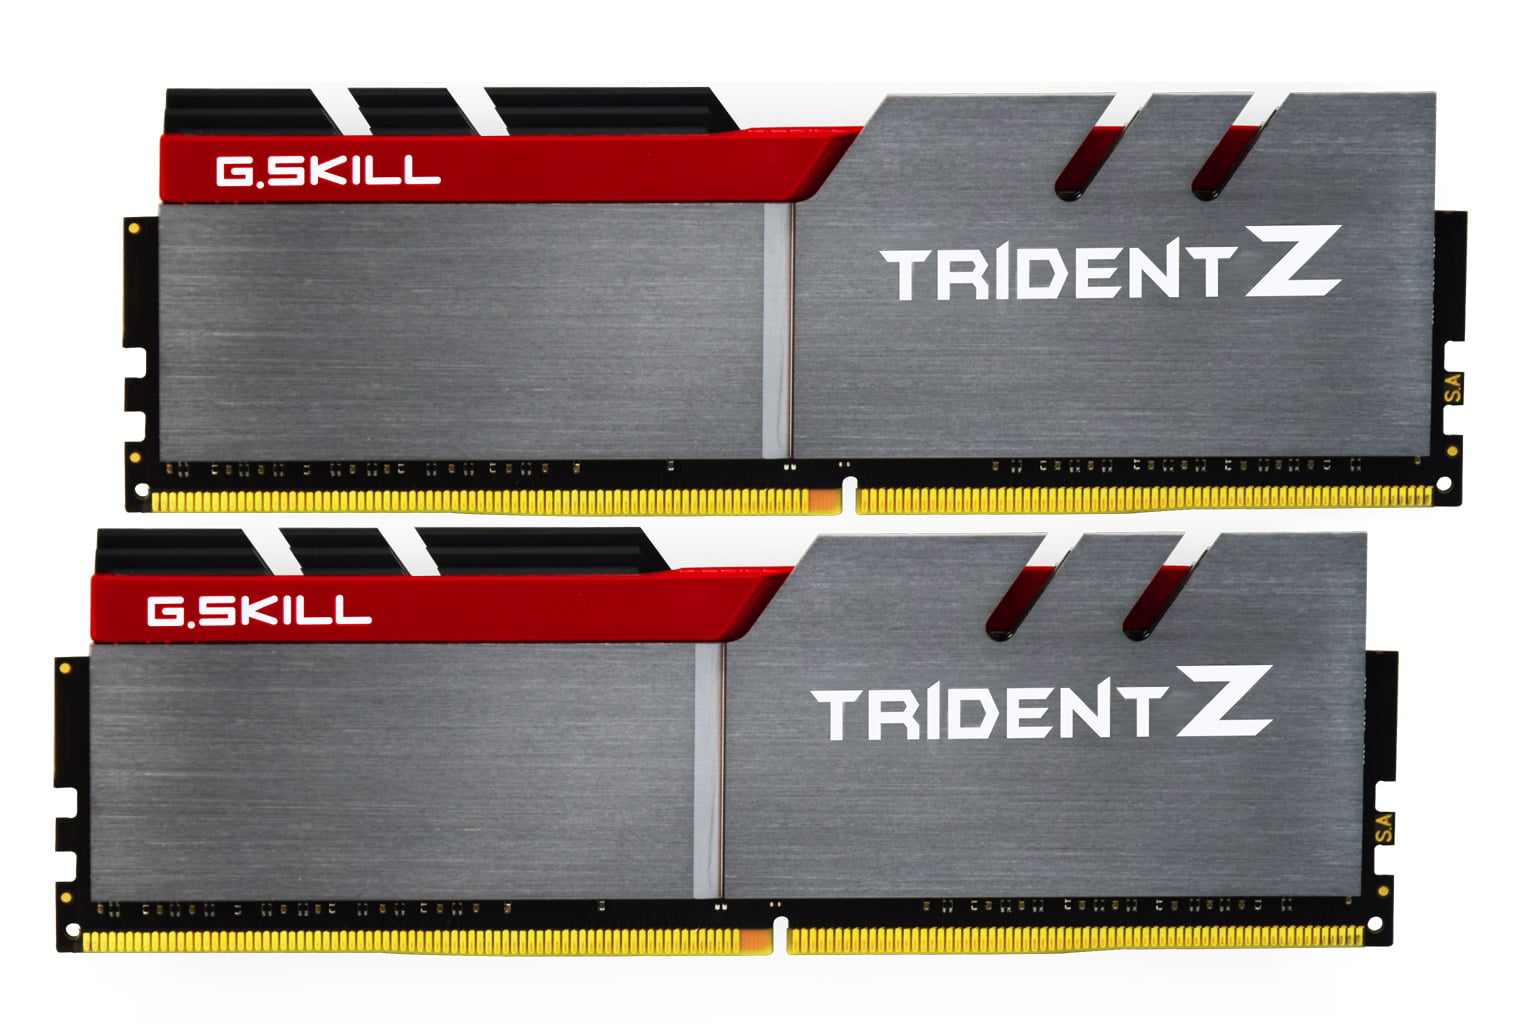 32GB G.Skill DDR4 Trident Z 2800Mhz PC4-22400 CL14 (14-14-14-35) 1.35V Dual Channel Kit (2x16GB)